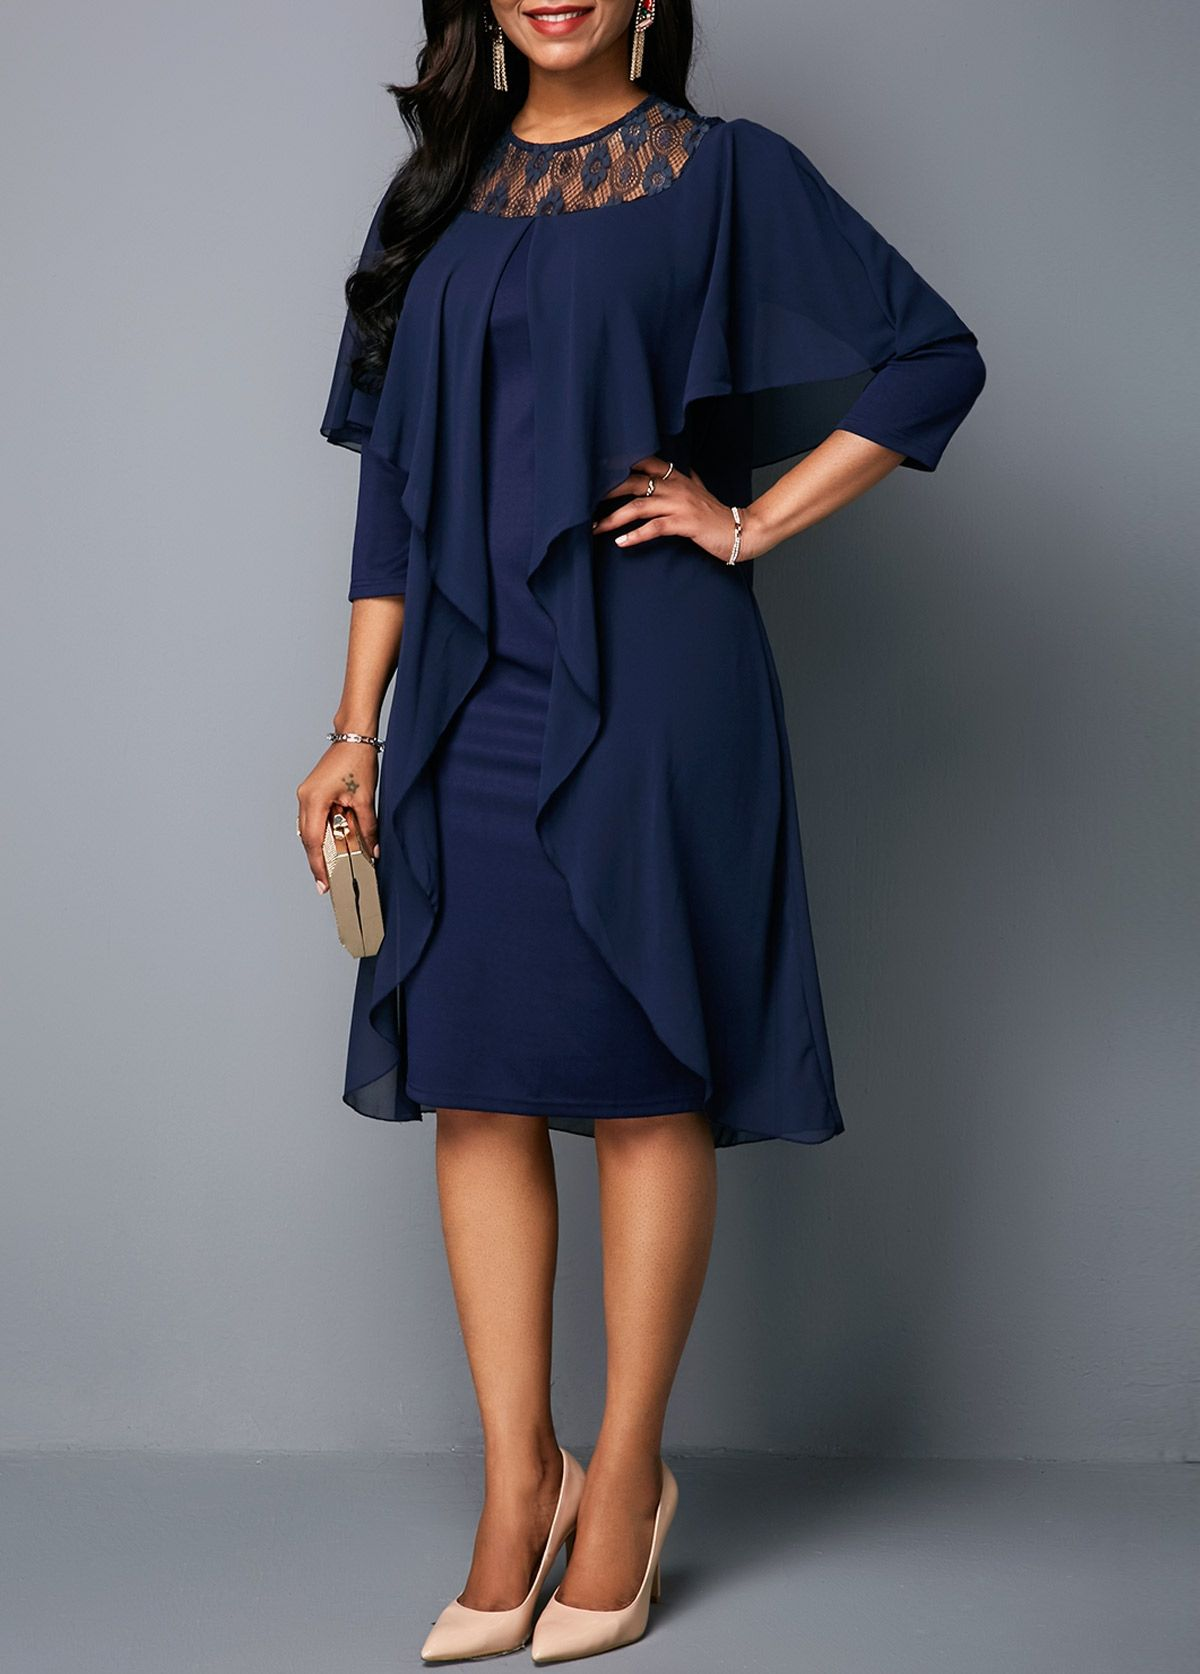 e12c037bb4b Round Neck Three Quarter Sleeve Chiffon Dress | Rotita.com - USD $30.95